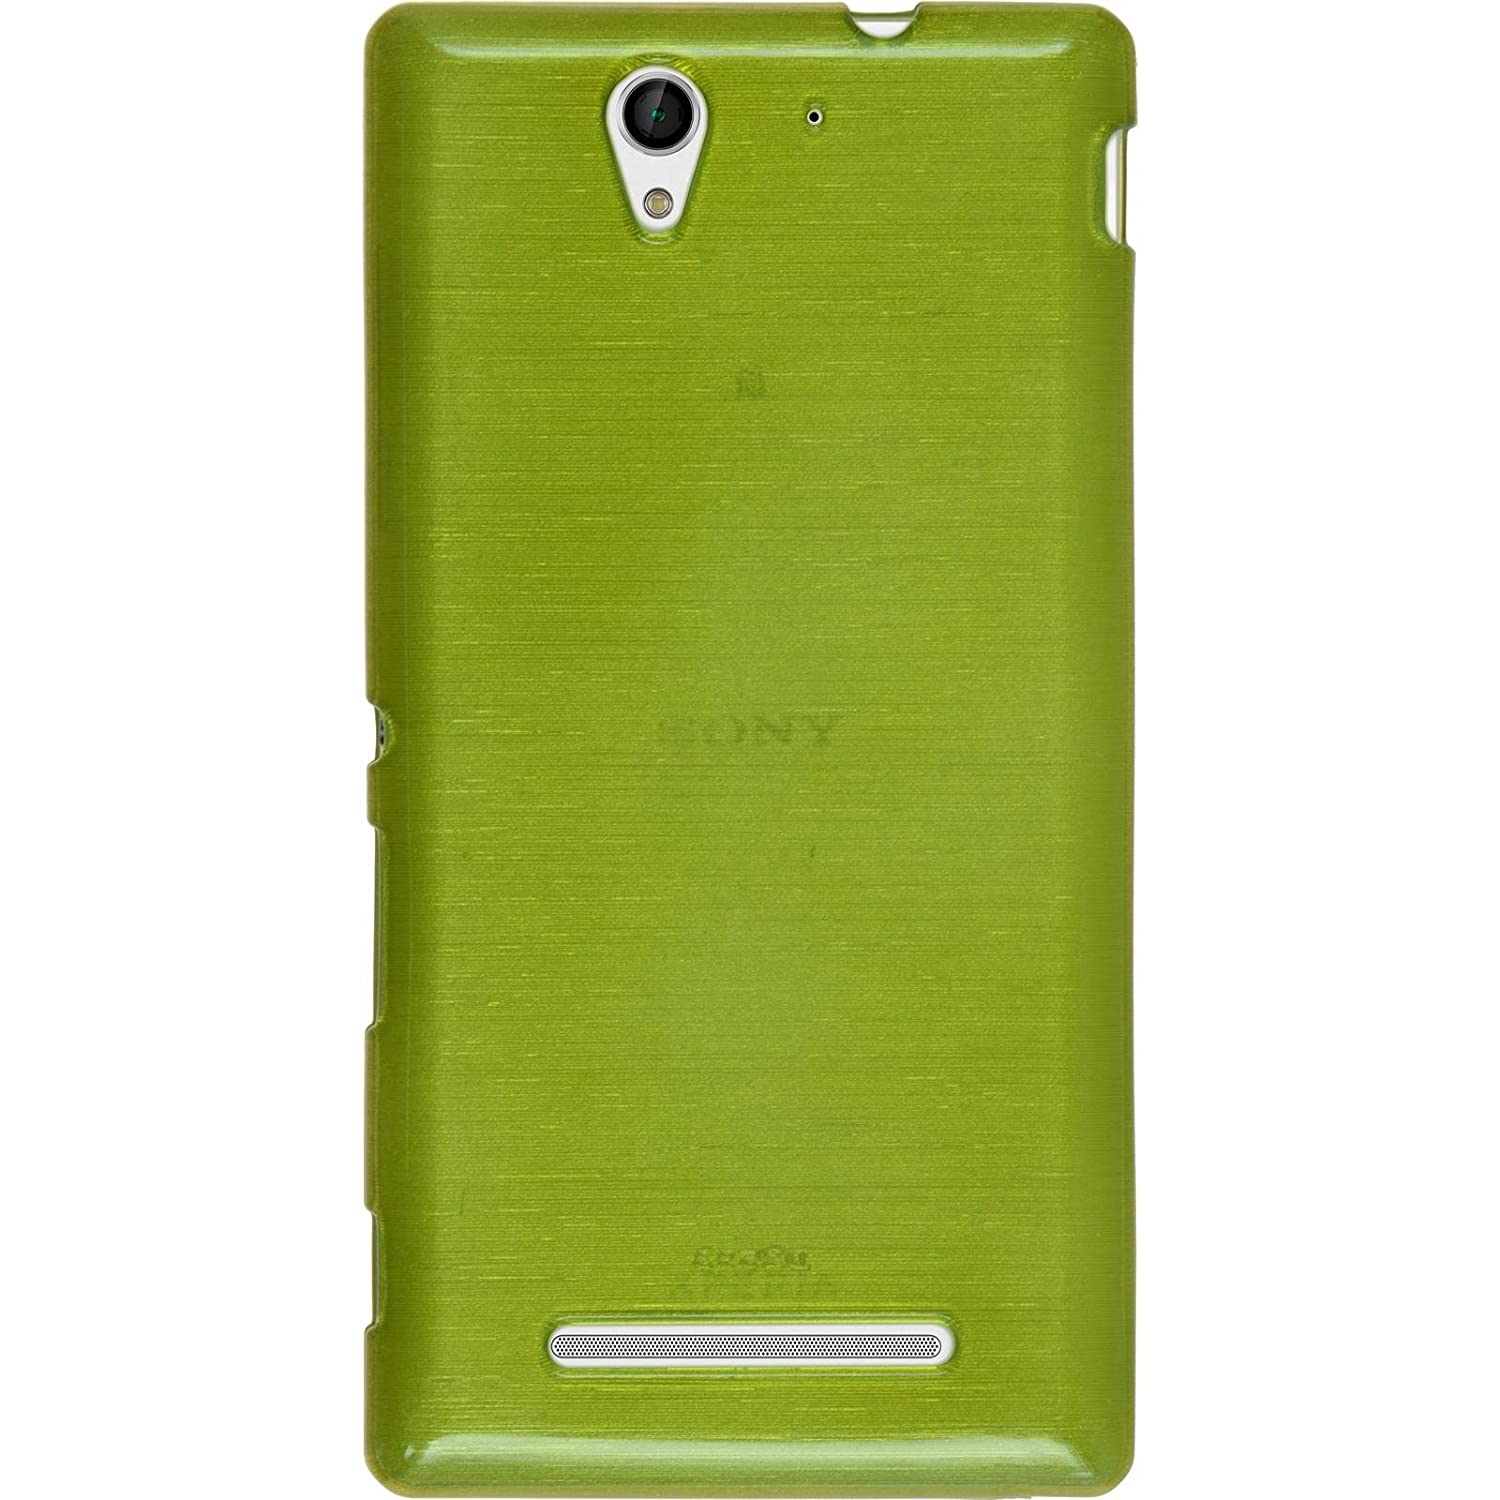 Amazon Silicone Case for Sony Xperia C3 brushed pastel green Cover PhoneNatic protective foils puters & Accessories